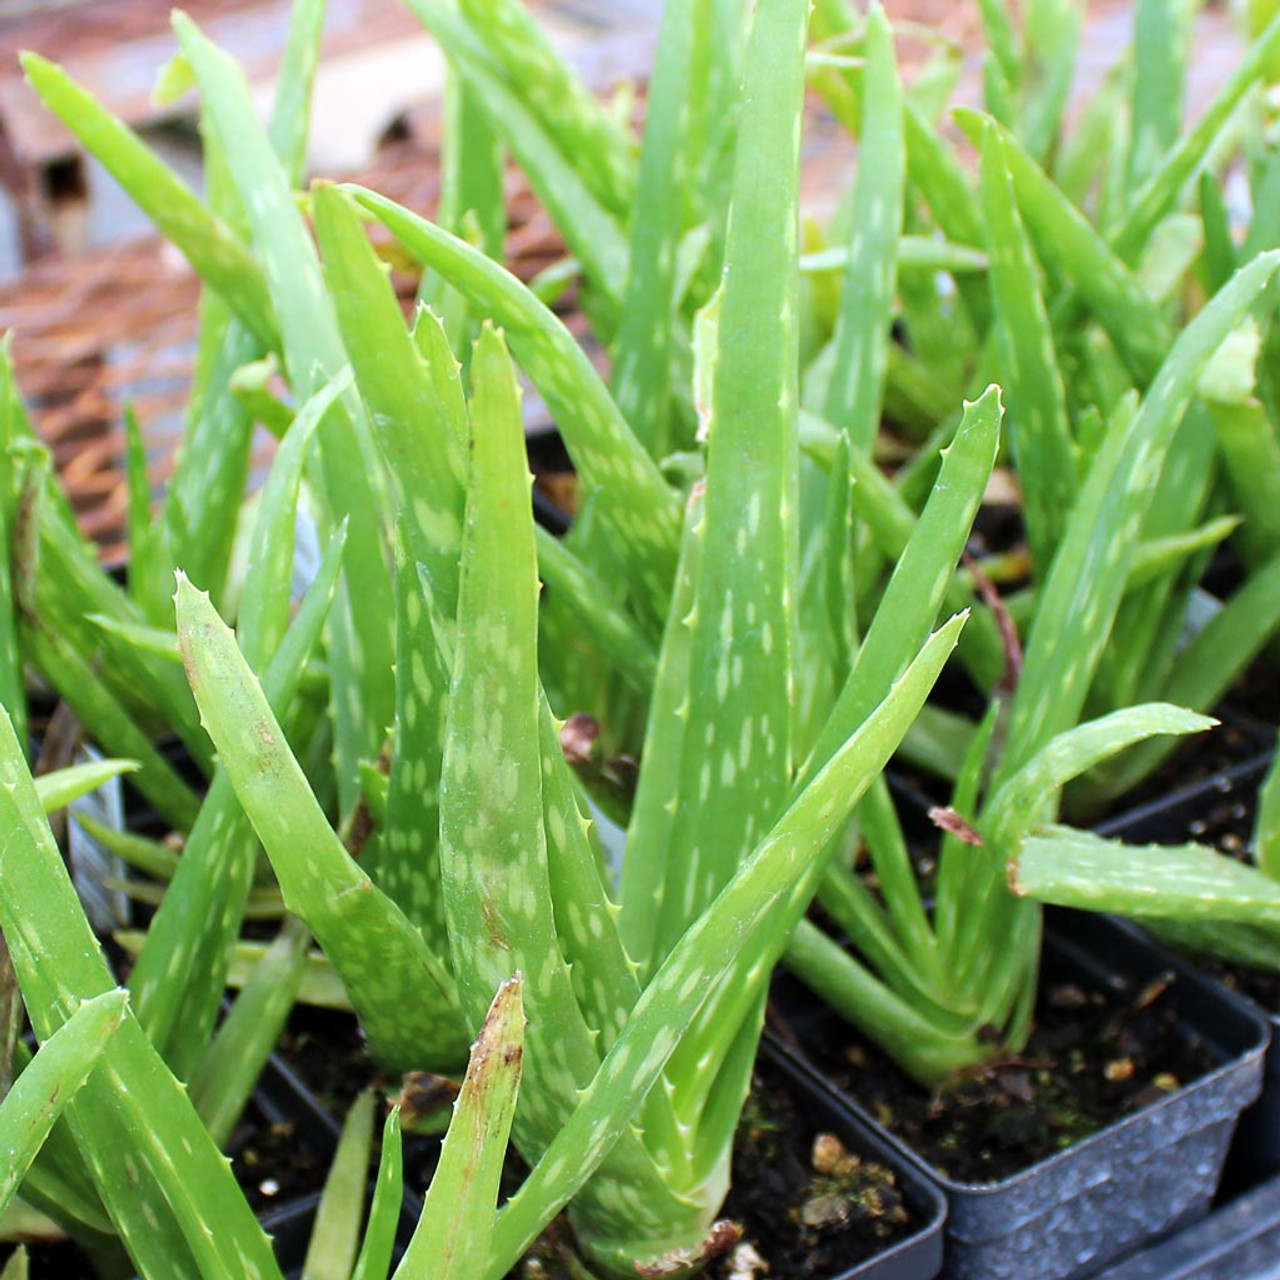 aloe barbadensis 2018-07-12 aloe vera what is aloe aloe is a succulent plant widely  used in alternative medicine there are at least 420 different plant species of aloe aloe vera specifically refers to the aloe barbadensis miller plant, which is the most common form used in aloe-based products how is aloe used traditionally, the clear gel from the aloe.